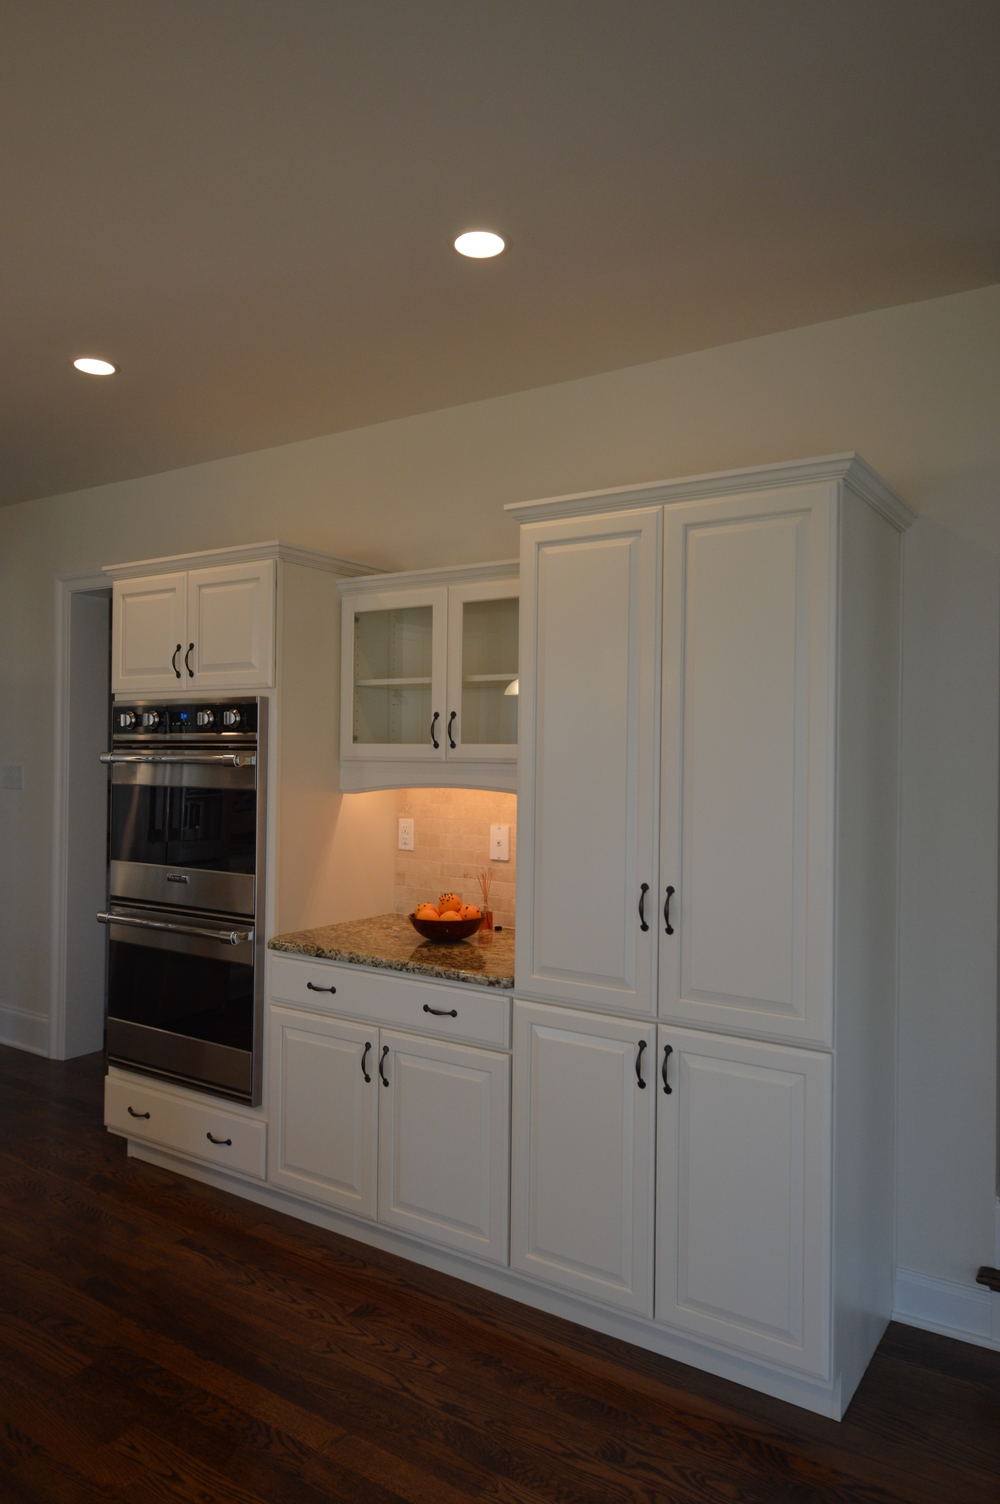 New construction custom home kitchen in Malvern, PA